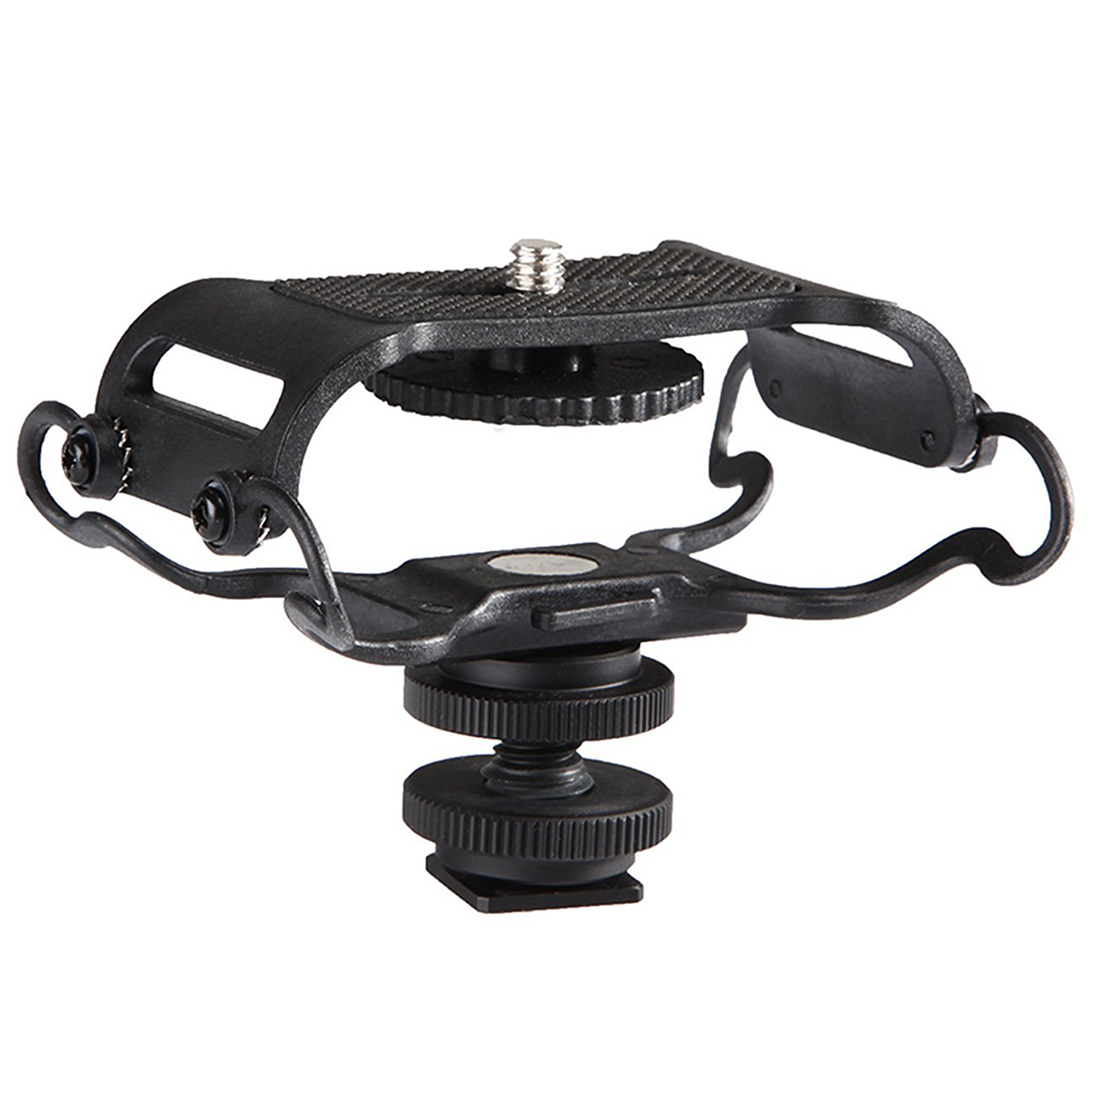 SCLS New Microphone and Portable Recorder Shock Mount - Fits the Zoom H4n, H5, H6, Tascam DR-40, DR-05, DR-07